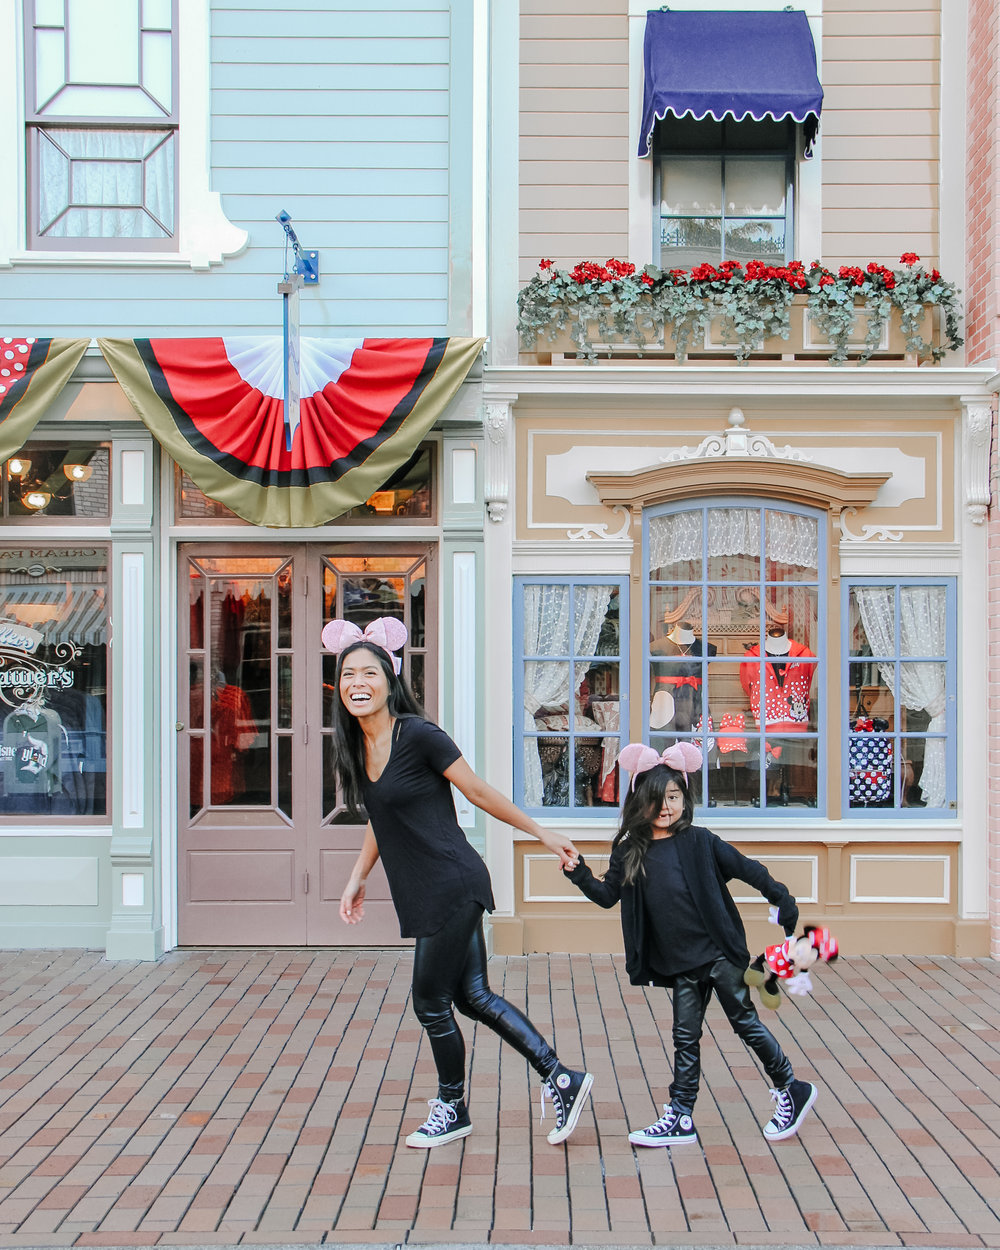 Hurry up - don't want to miss our reservation at Cafe Orleans!